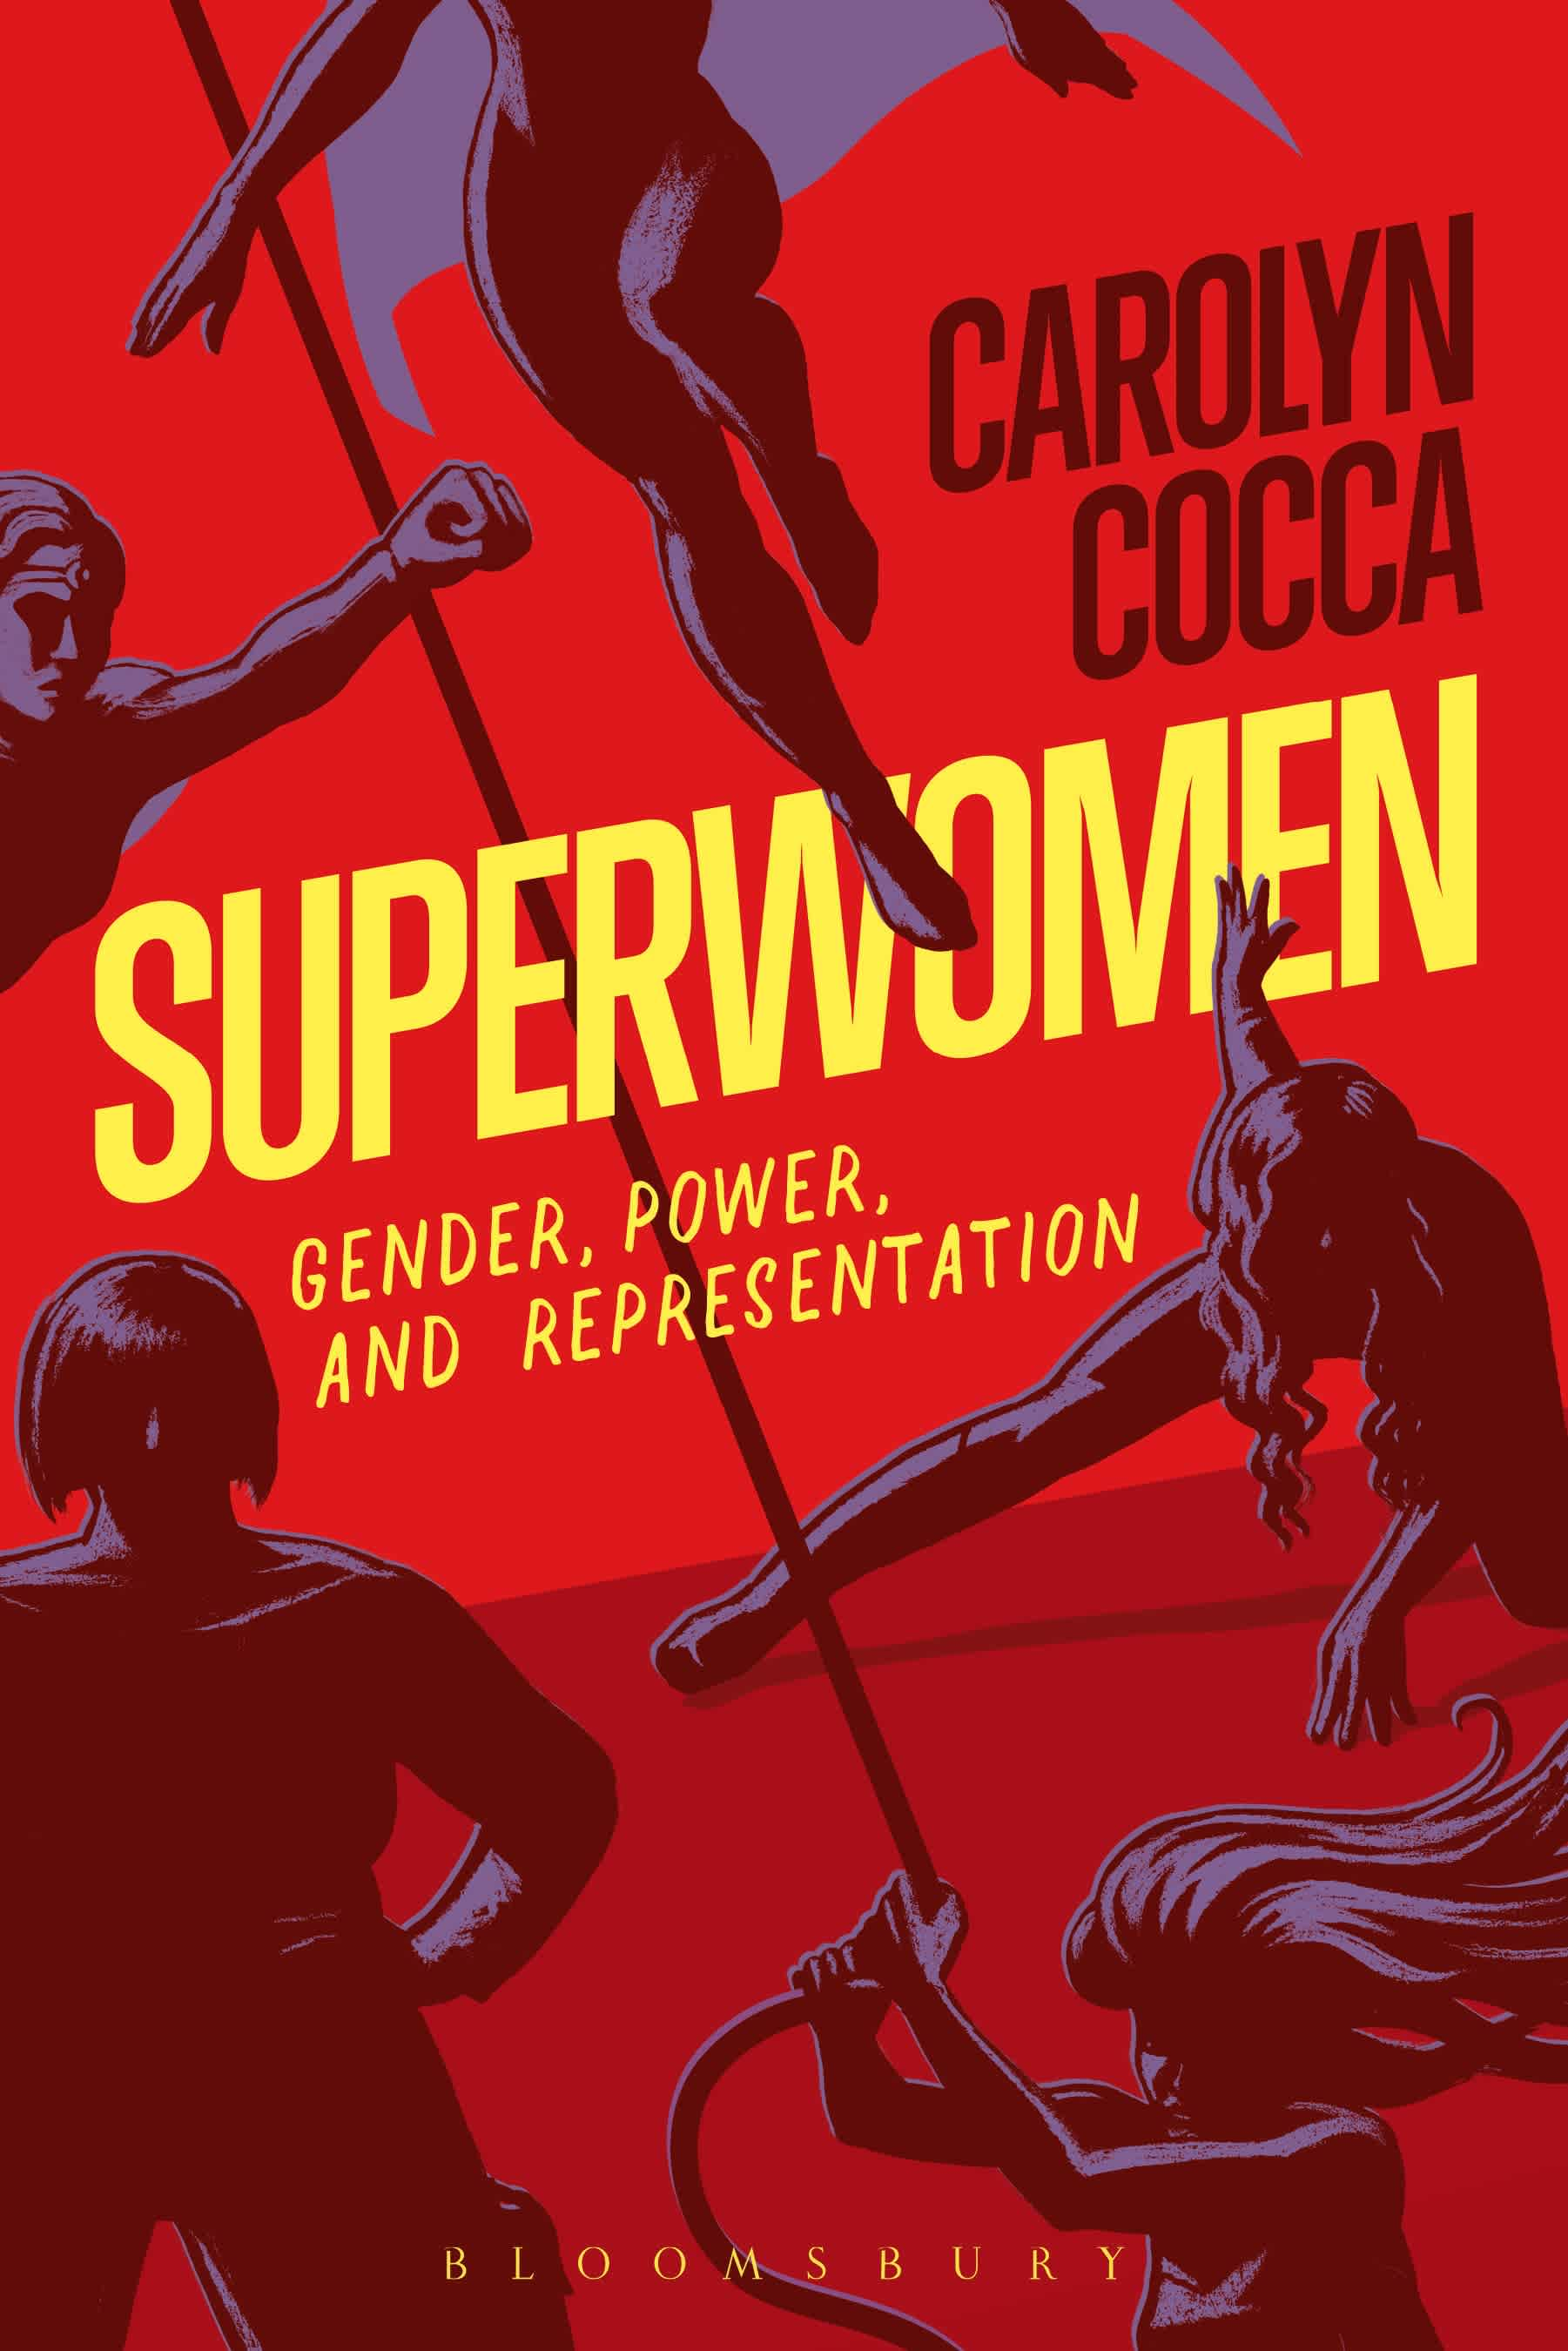 Superwomen: Gender, Power, and Representation cover image